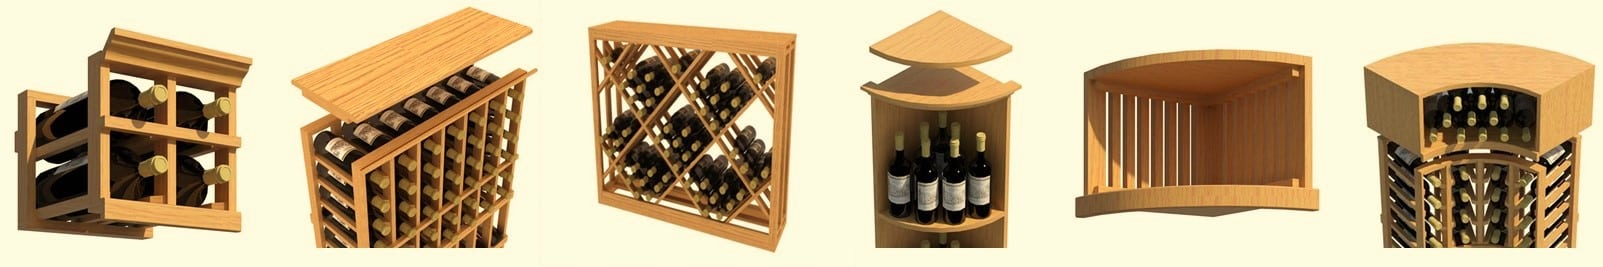 All About Modular Wood Wine Racks Kits Double Deep Stackable Custom Commercial wc